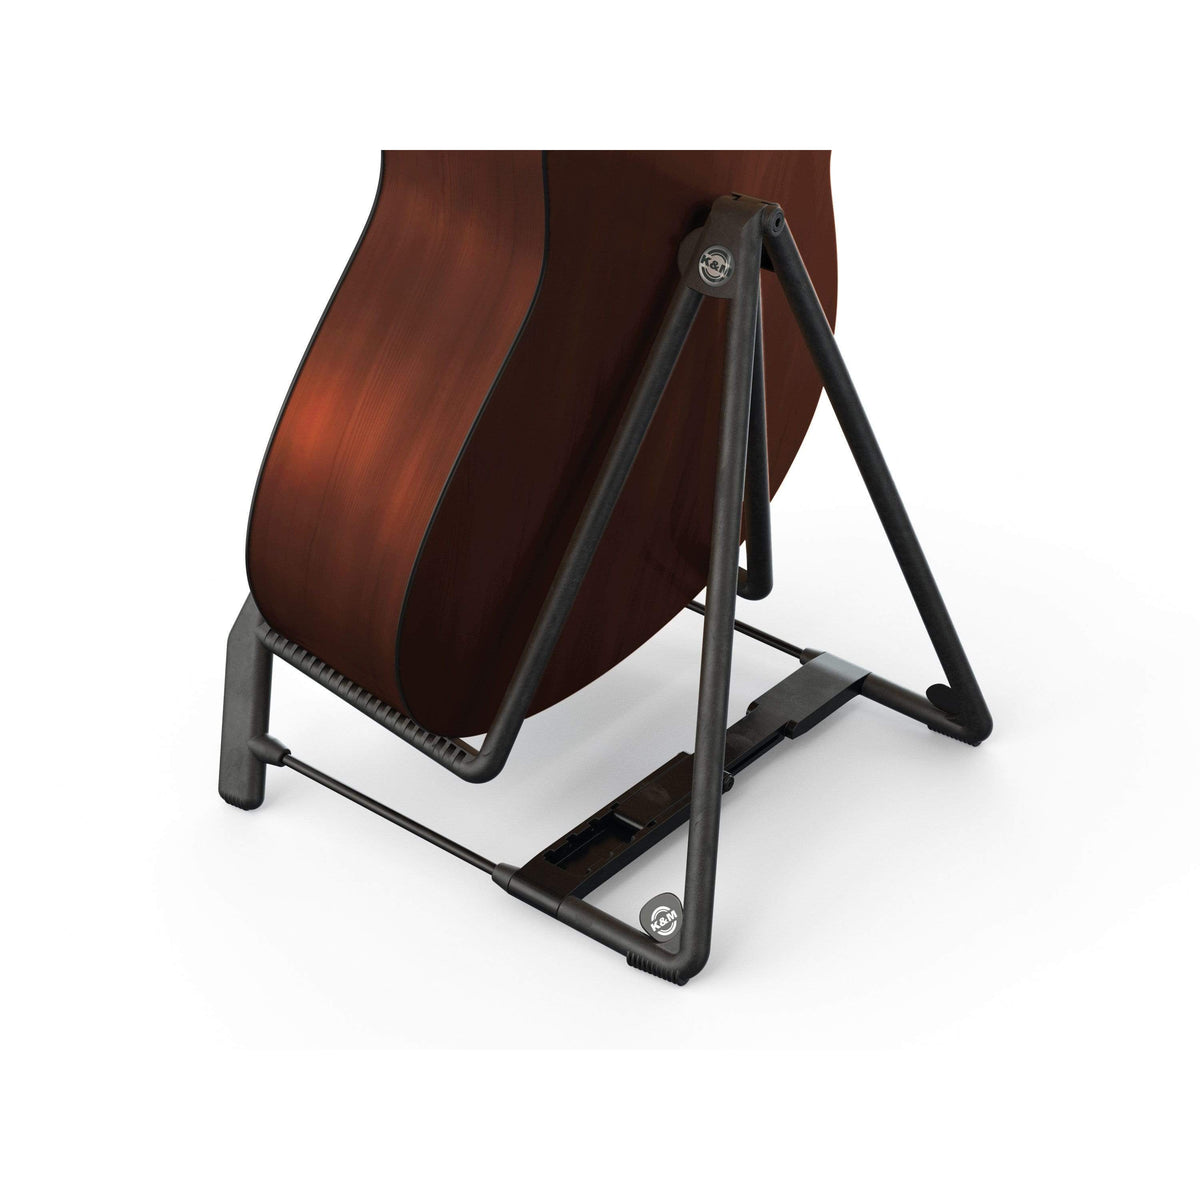 König & Meyer Accessories K&M 17580 A-guitar stand -Heli 2